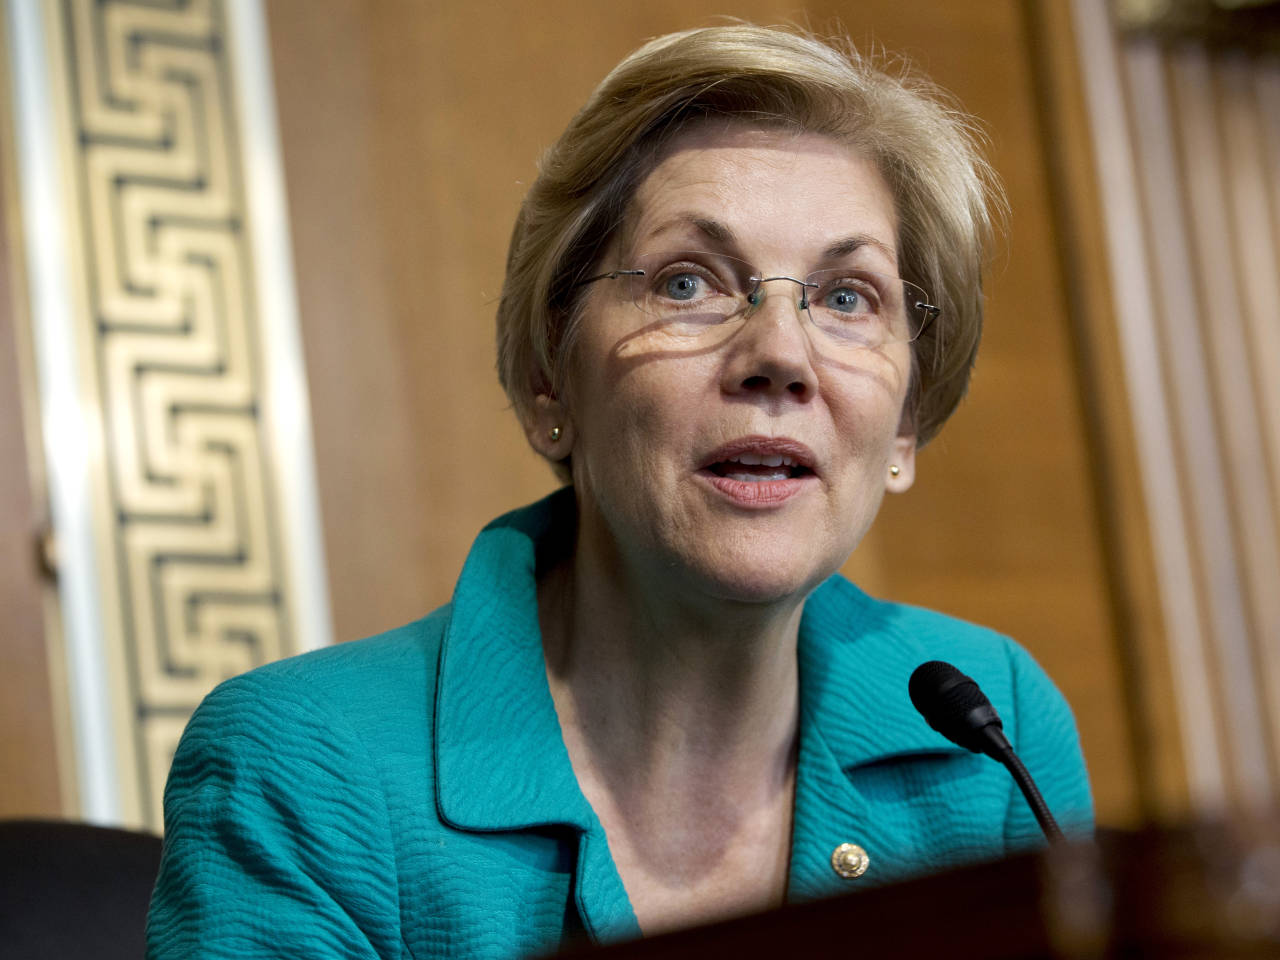 Warren Reacts Awkwardly When Pressed on Potential 2020 White House Run